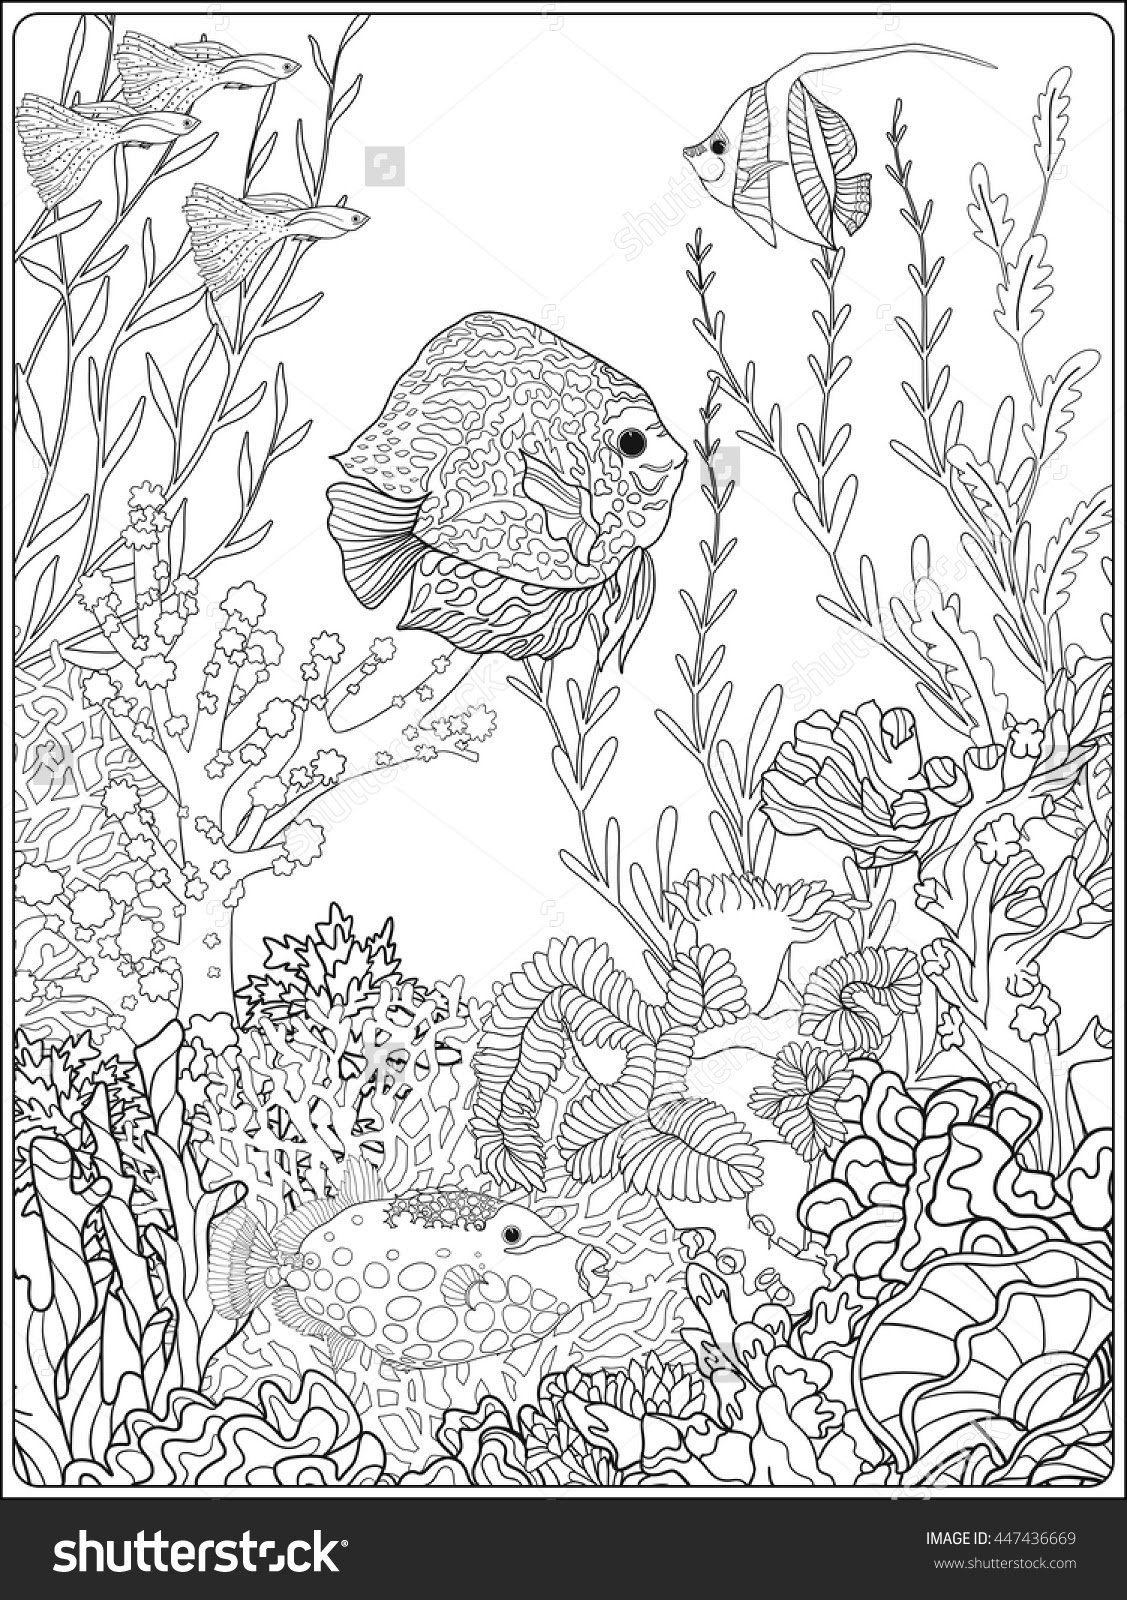 Sea World Coloring Pages at GetColorings.com | Free ...